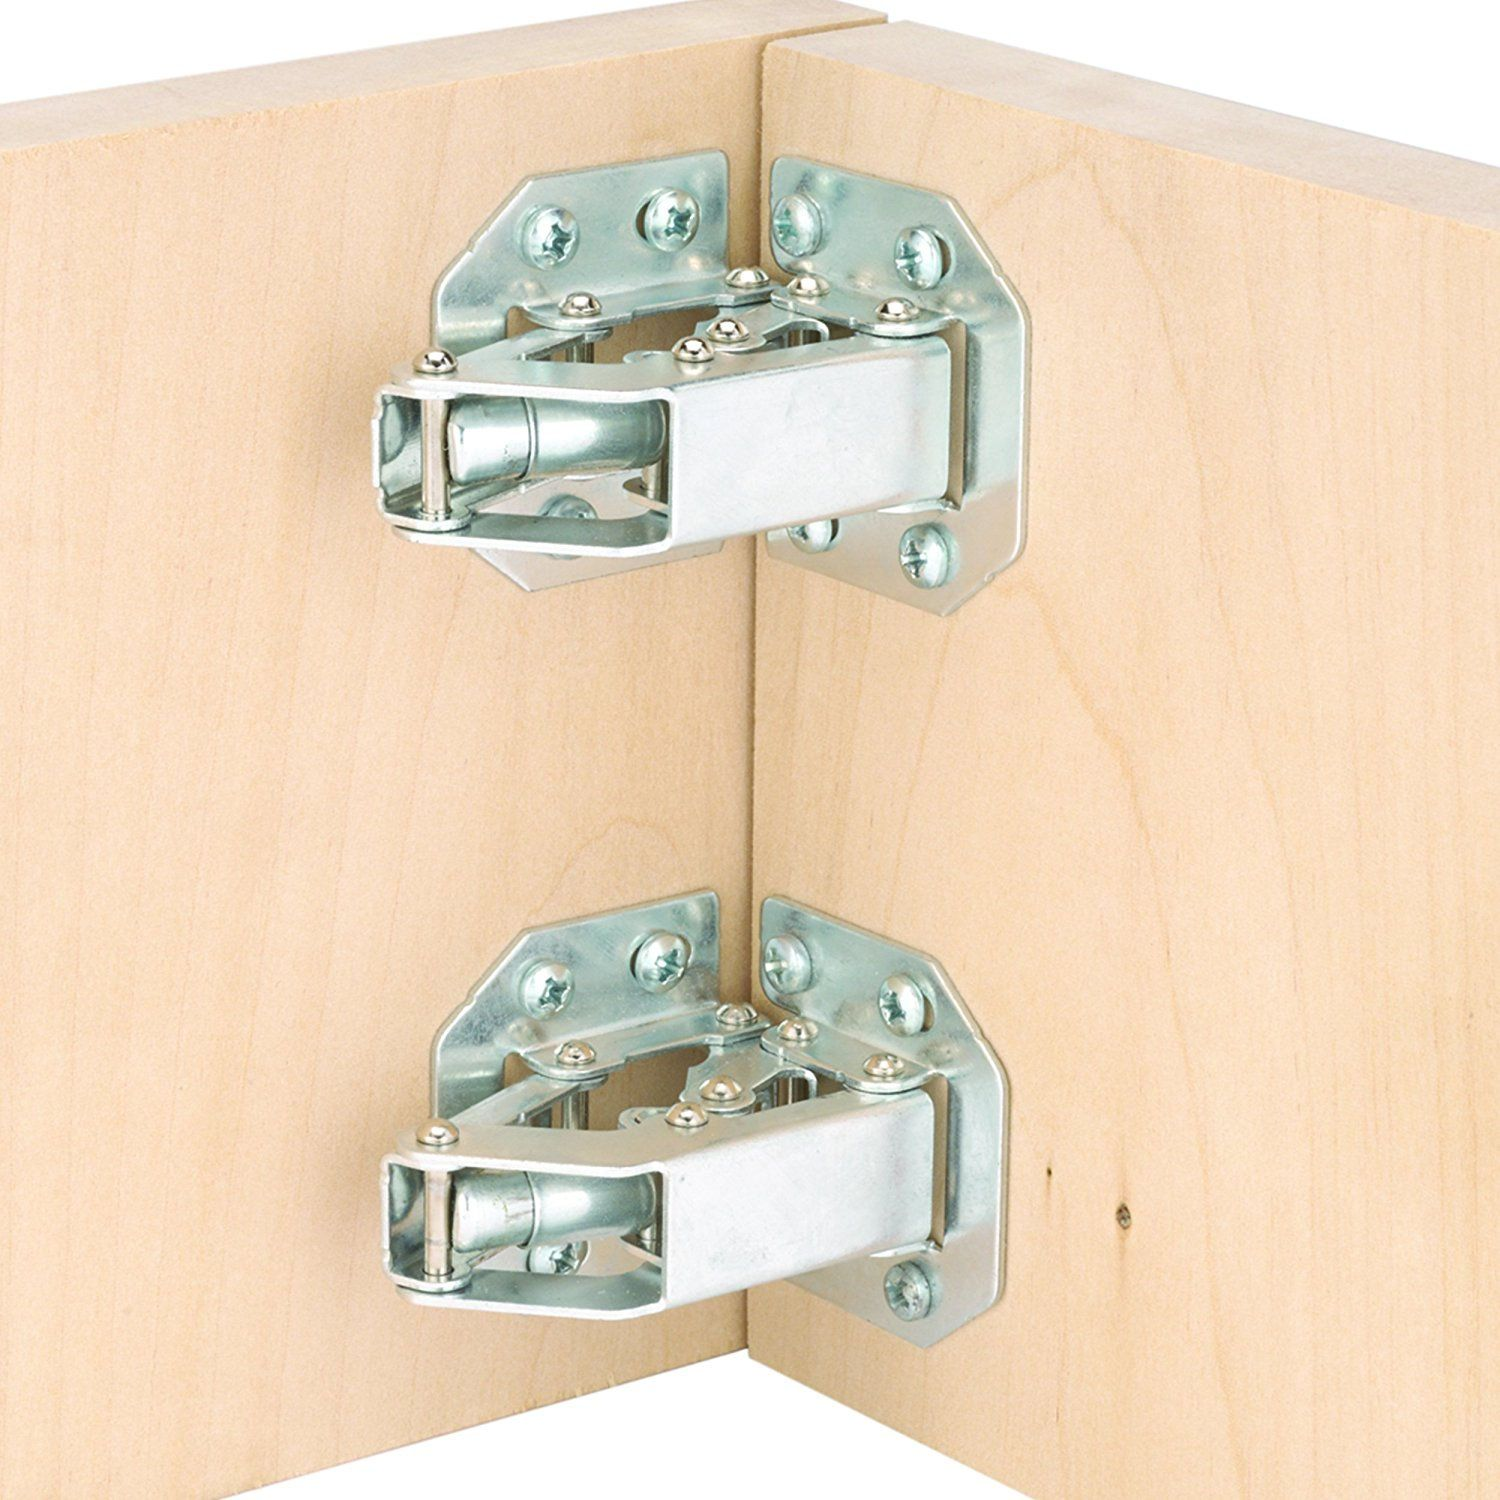 18 Different Types Of Cabinet Hinges Types Of Cabinets Self Closing Hinges Cabinet Hinges